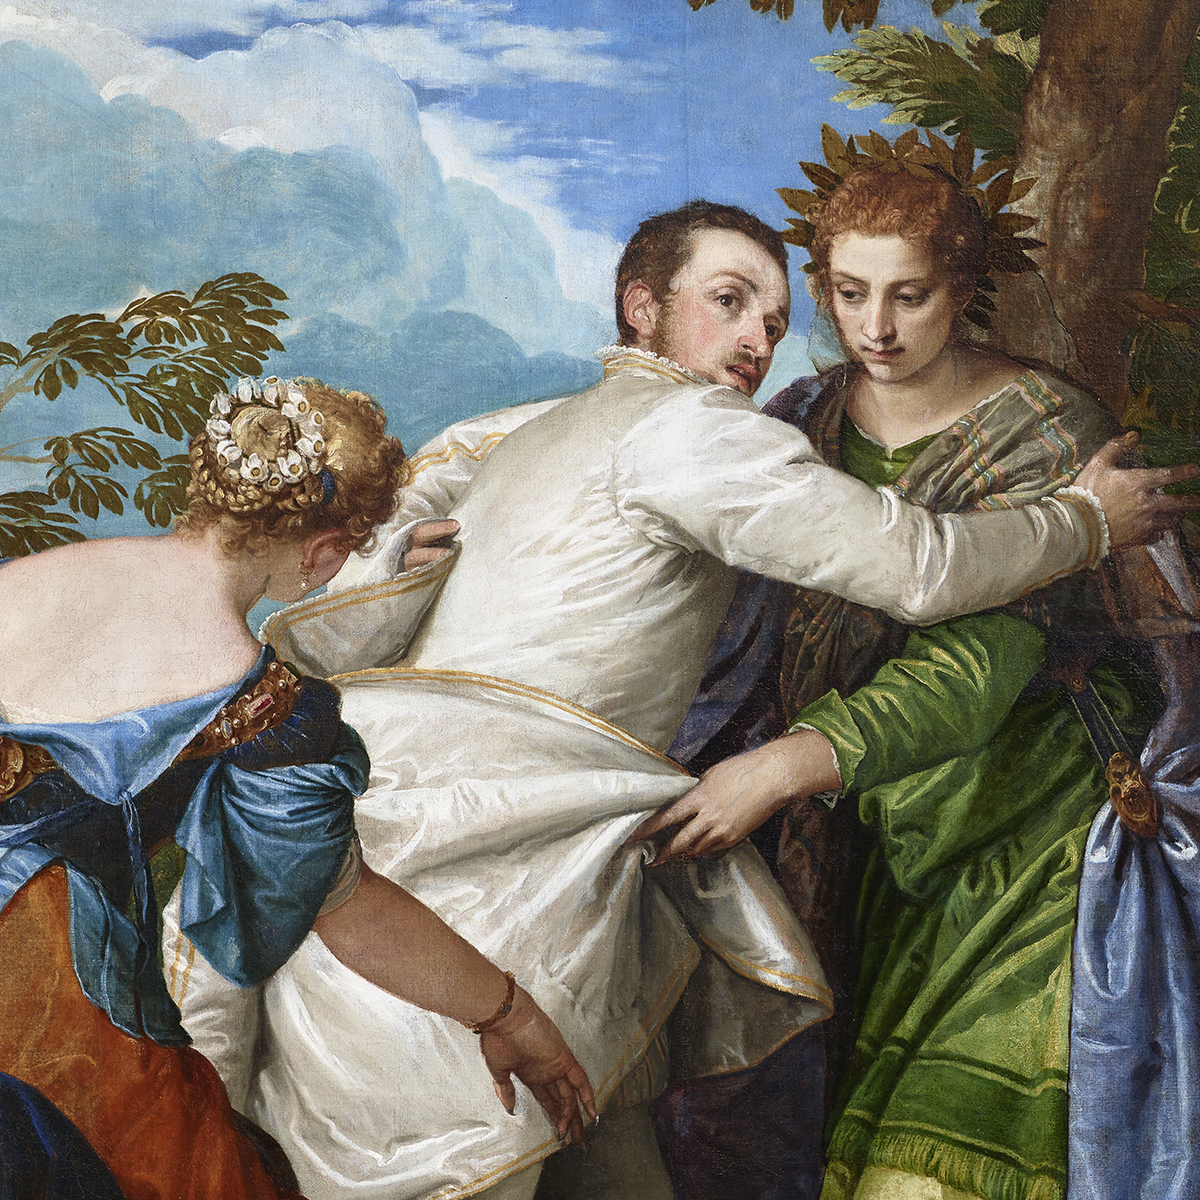 "A detail of Veronese's ""Choice Between Virtue and Vice."" Set against a cloudy blue sky, Hercules (center) encounters two women in colorful robes, representing Virtue and Vice. Vice reaches for the hero with taloned hands. Hercules turns away to face Virtue"